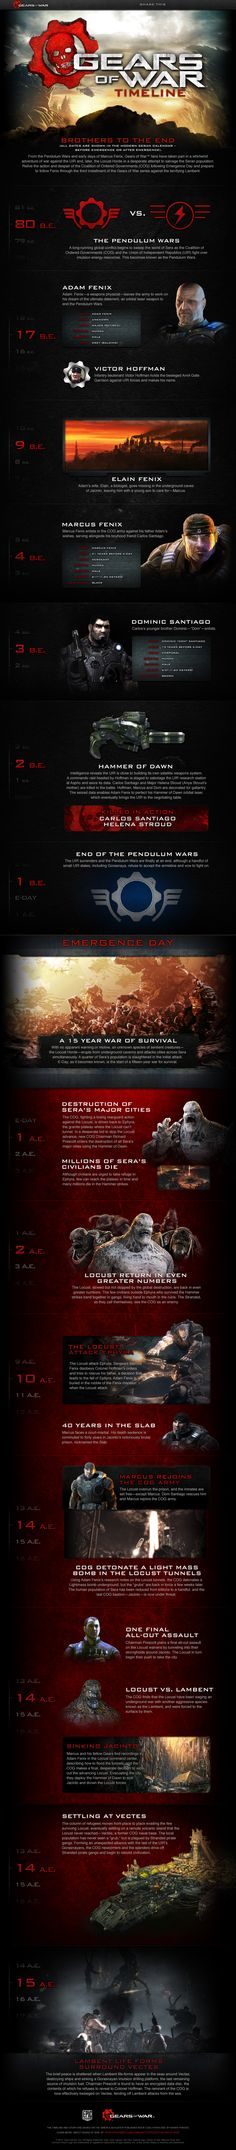 Gears of war timeline #infografia #infographic